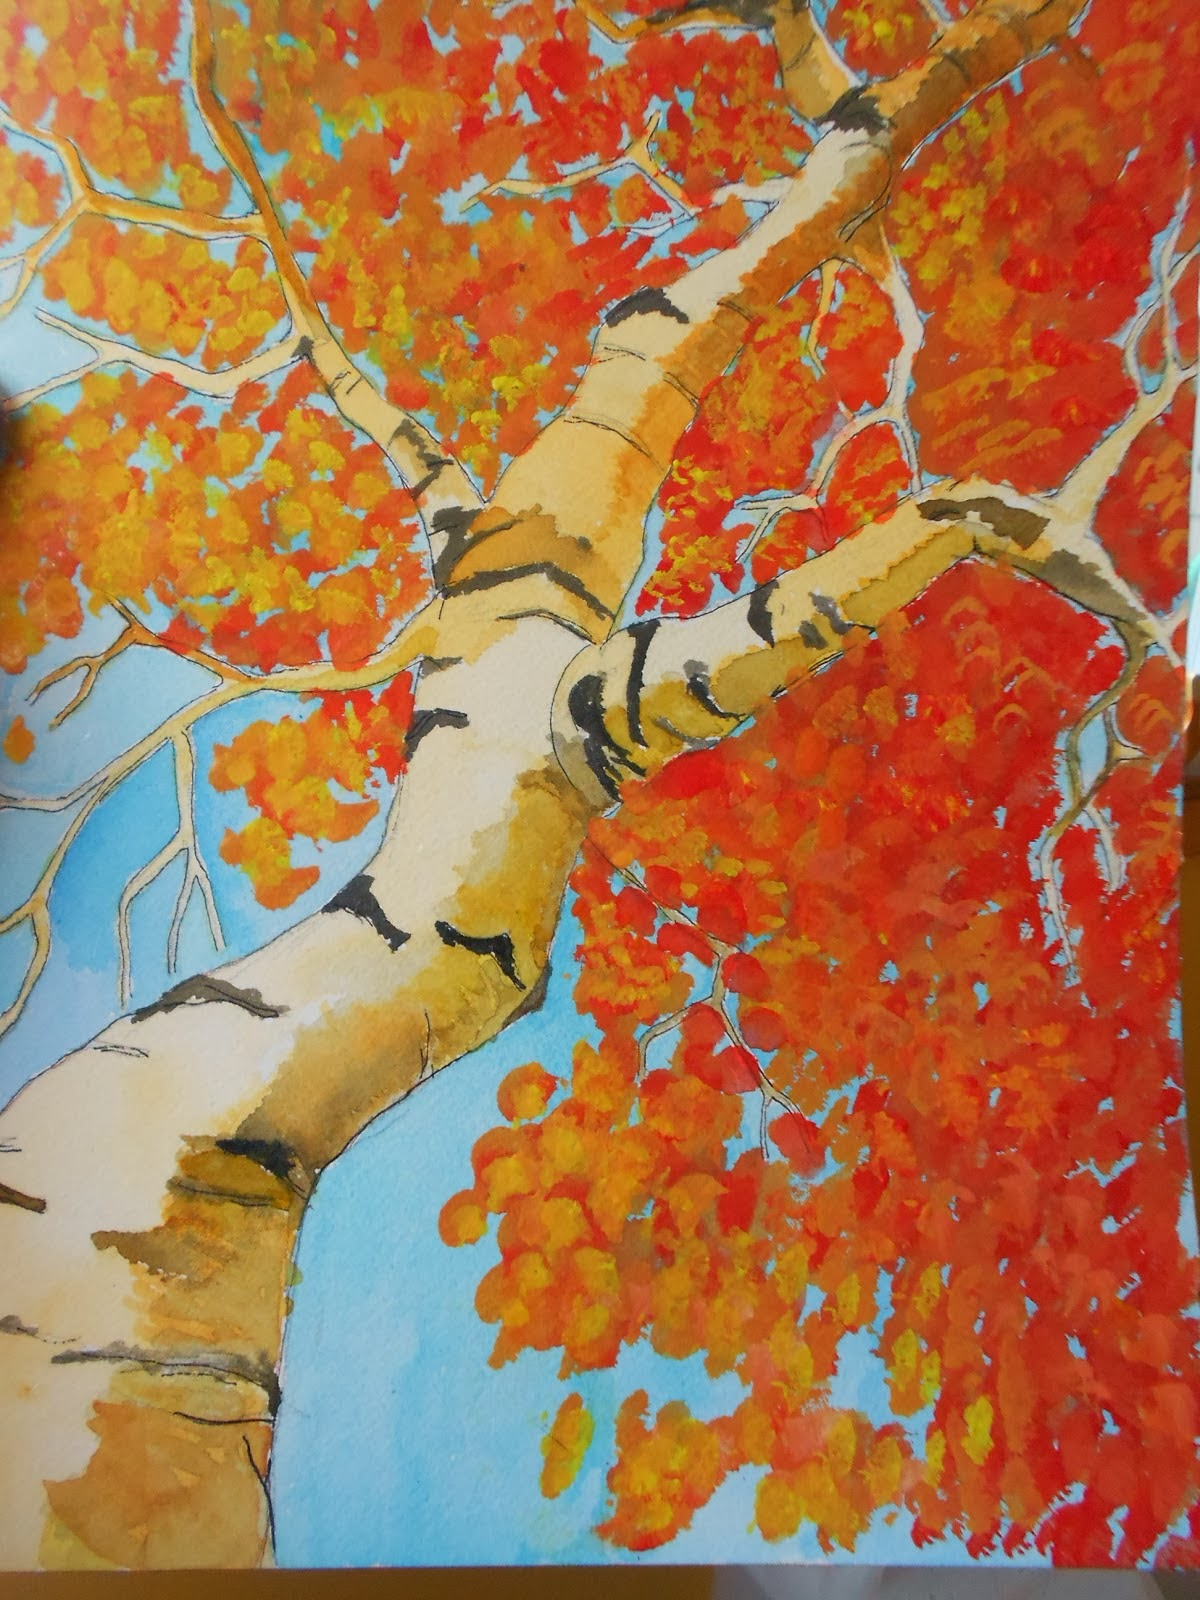 Autumn landscape art project ideas artmuse67 Fun painting ideas for toddlers